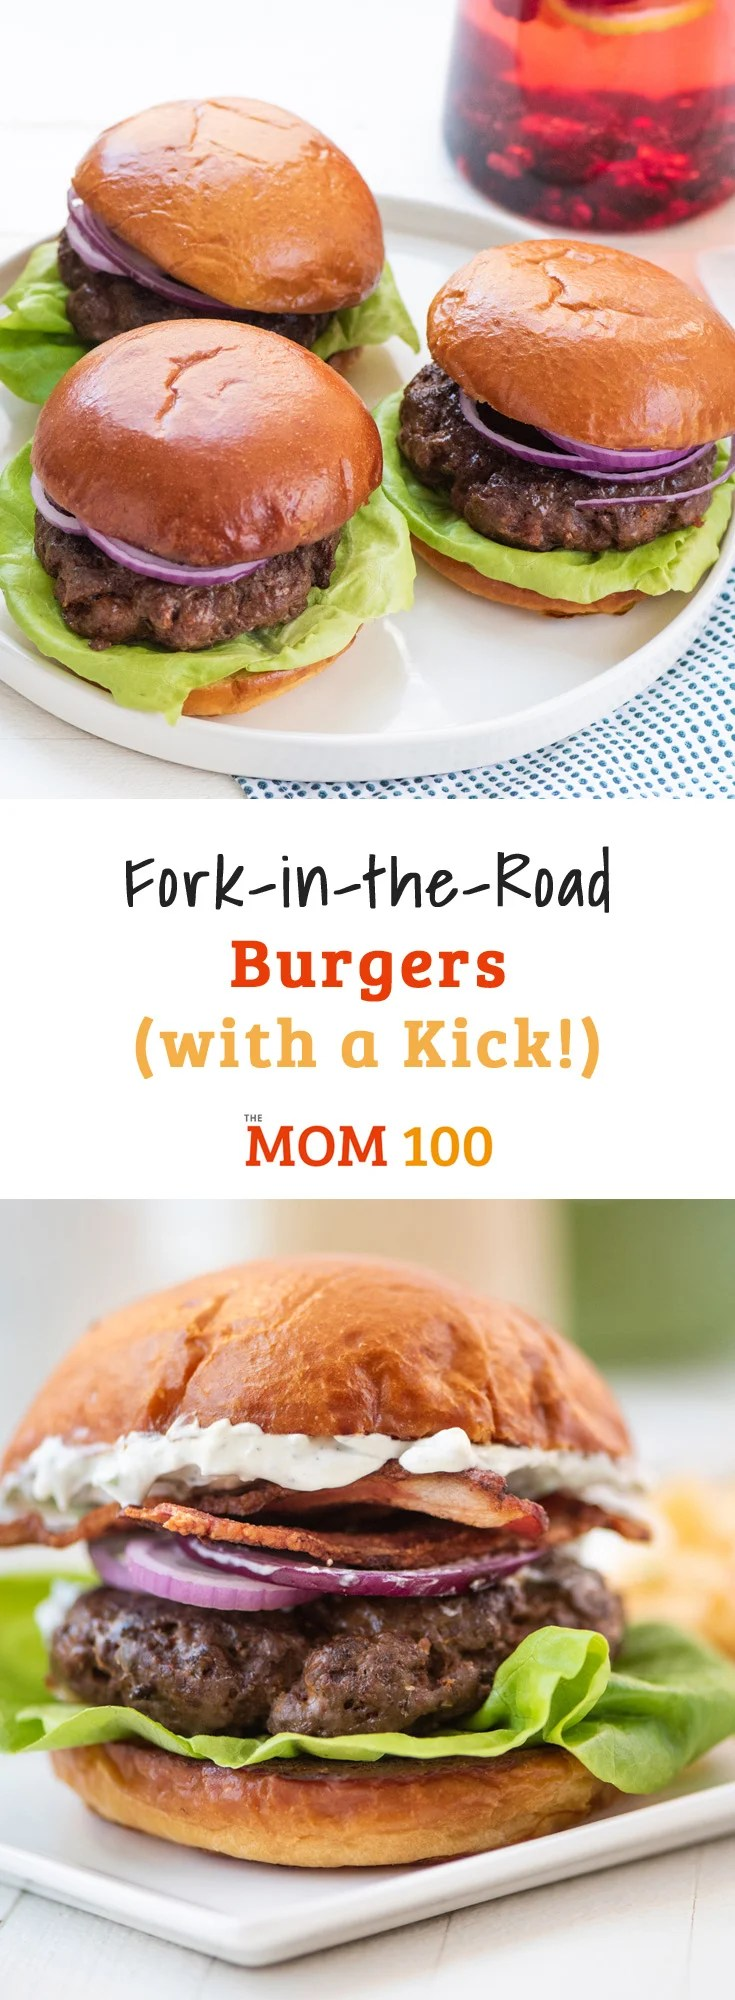 Fork-in-the-Road burgers are versatile and easily adaptable for a family of picky-eaters or for those less spice-inclined.